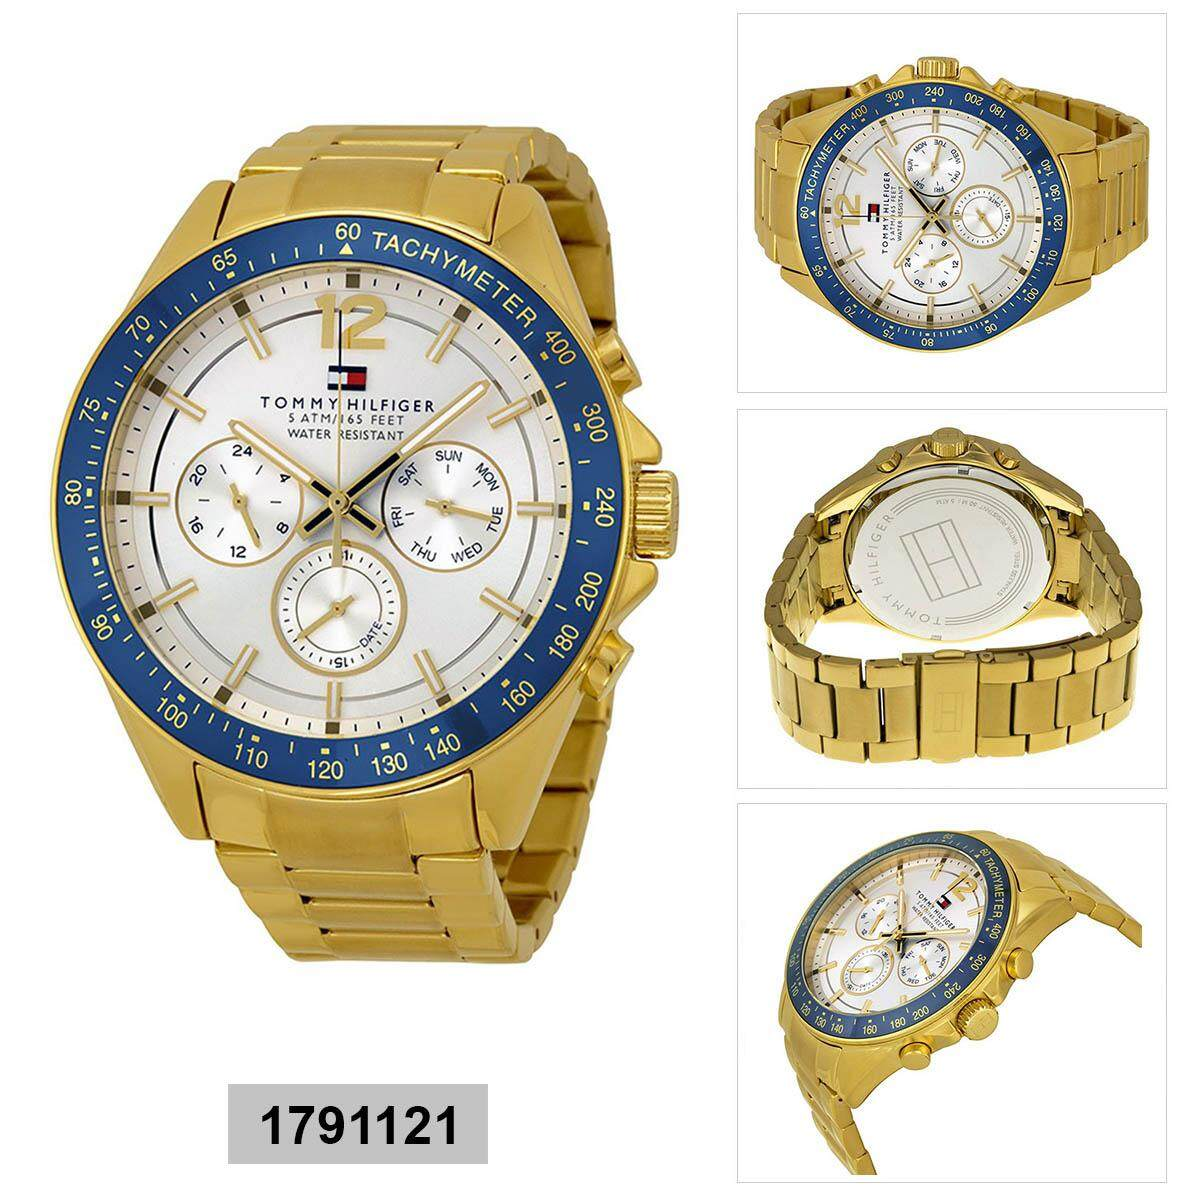 1a2e93aecf Tommy Hilfiger Men Business Watches price in Malaysia - Best Tommy ...